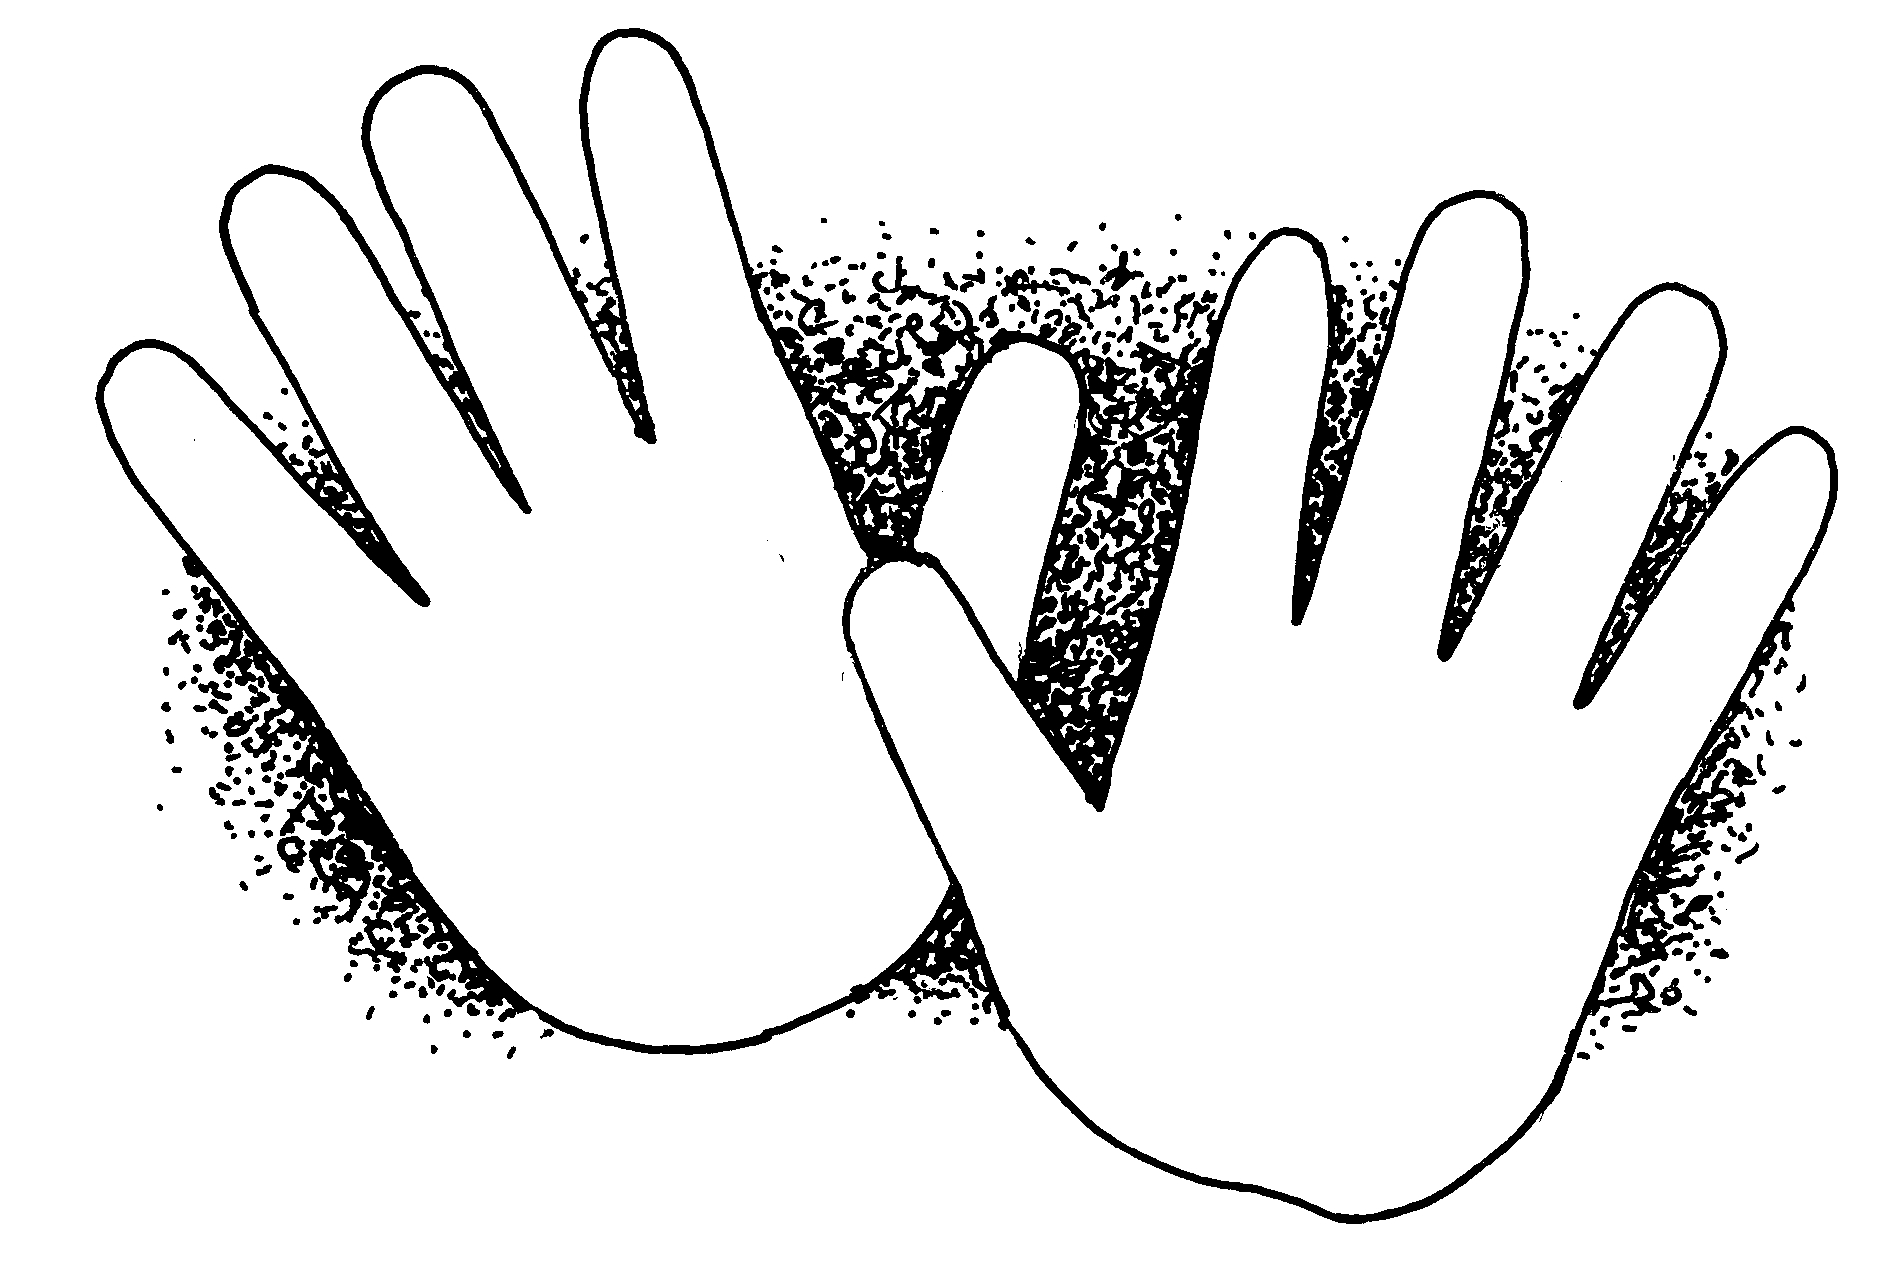 Hands clipart #3, Download drawings